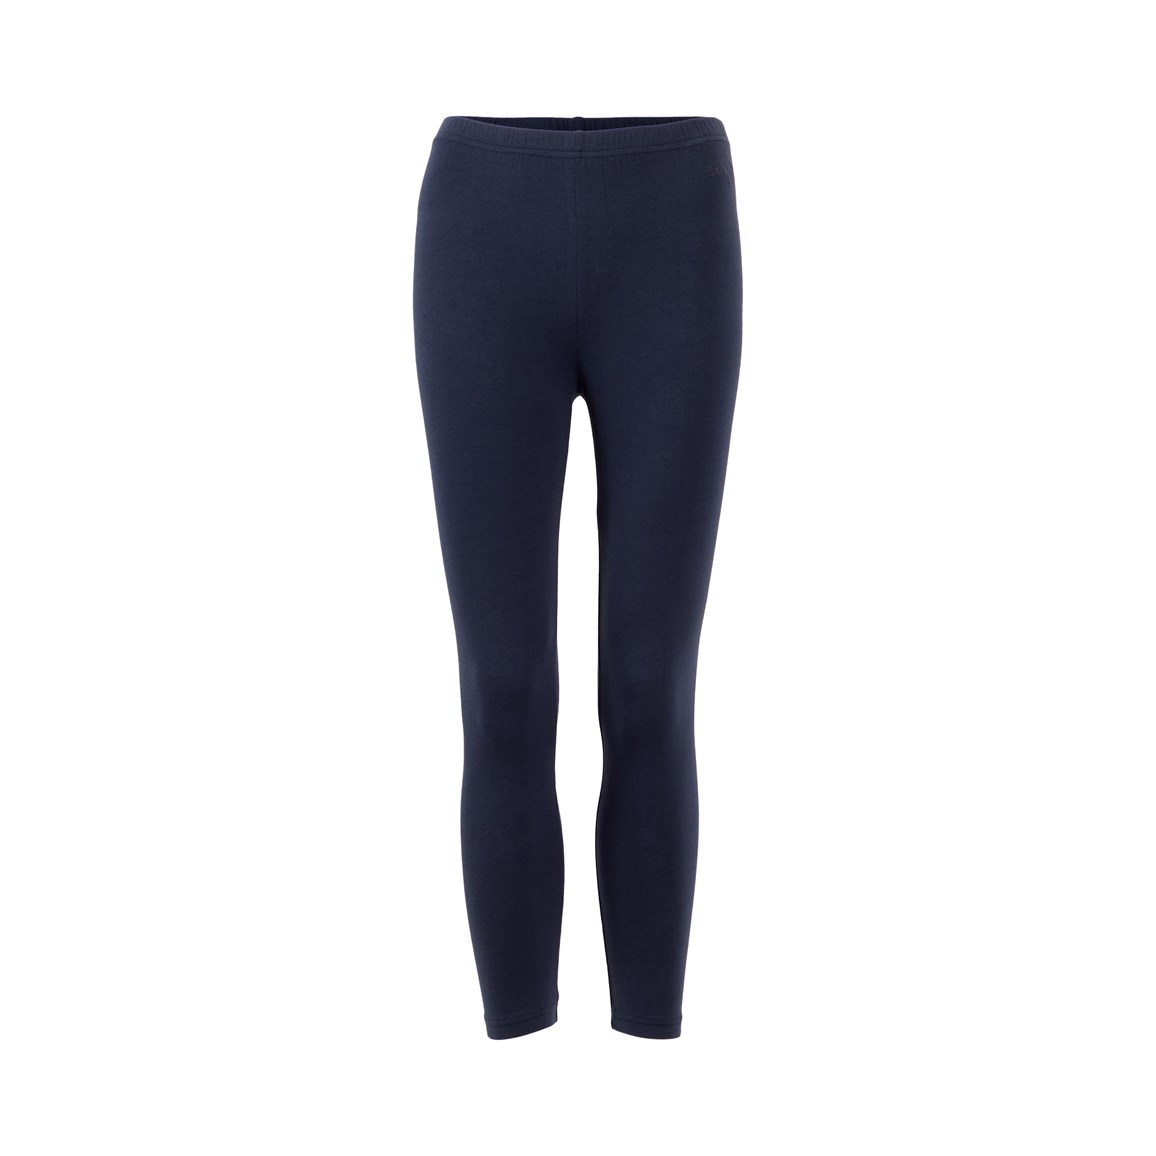 Women's Trousers Weird Fish Blondie Cropped Leggings Navy Size 16